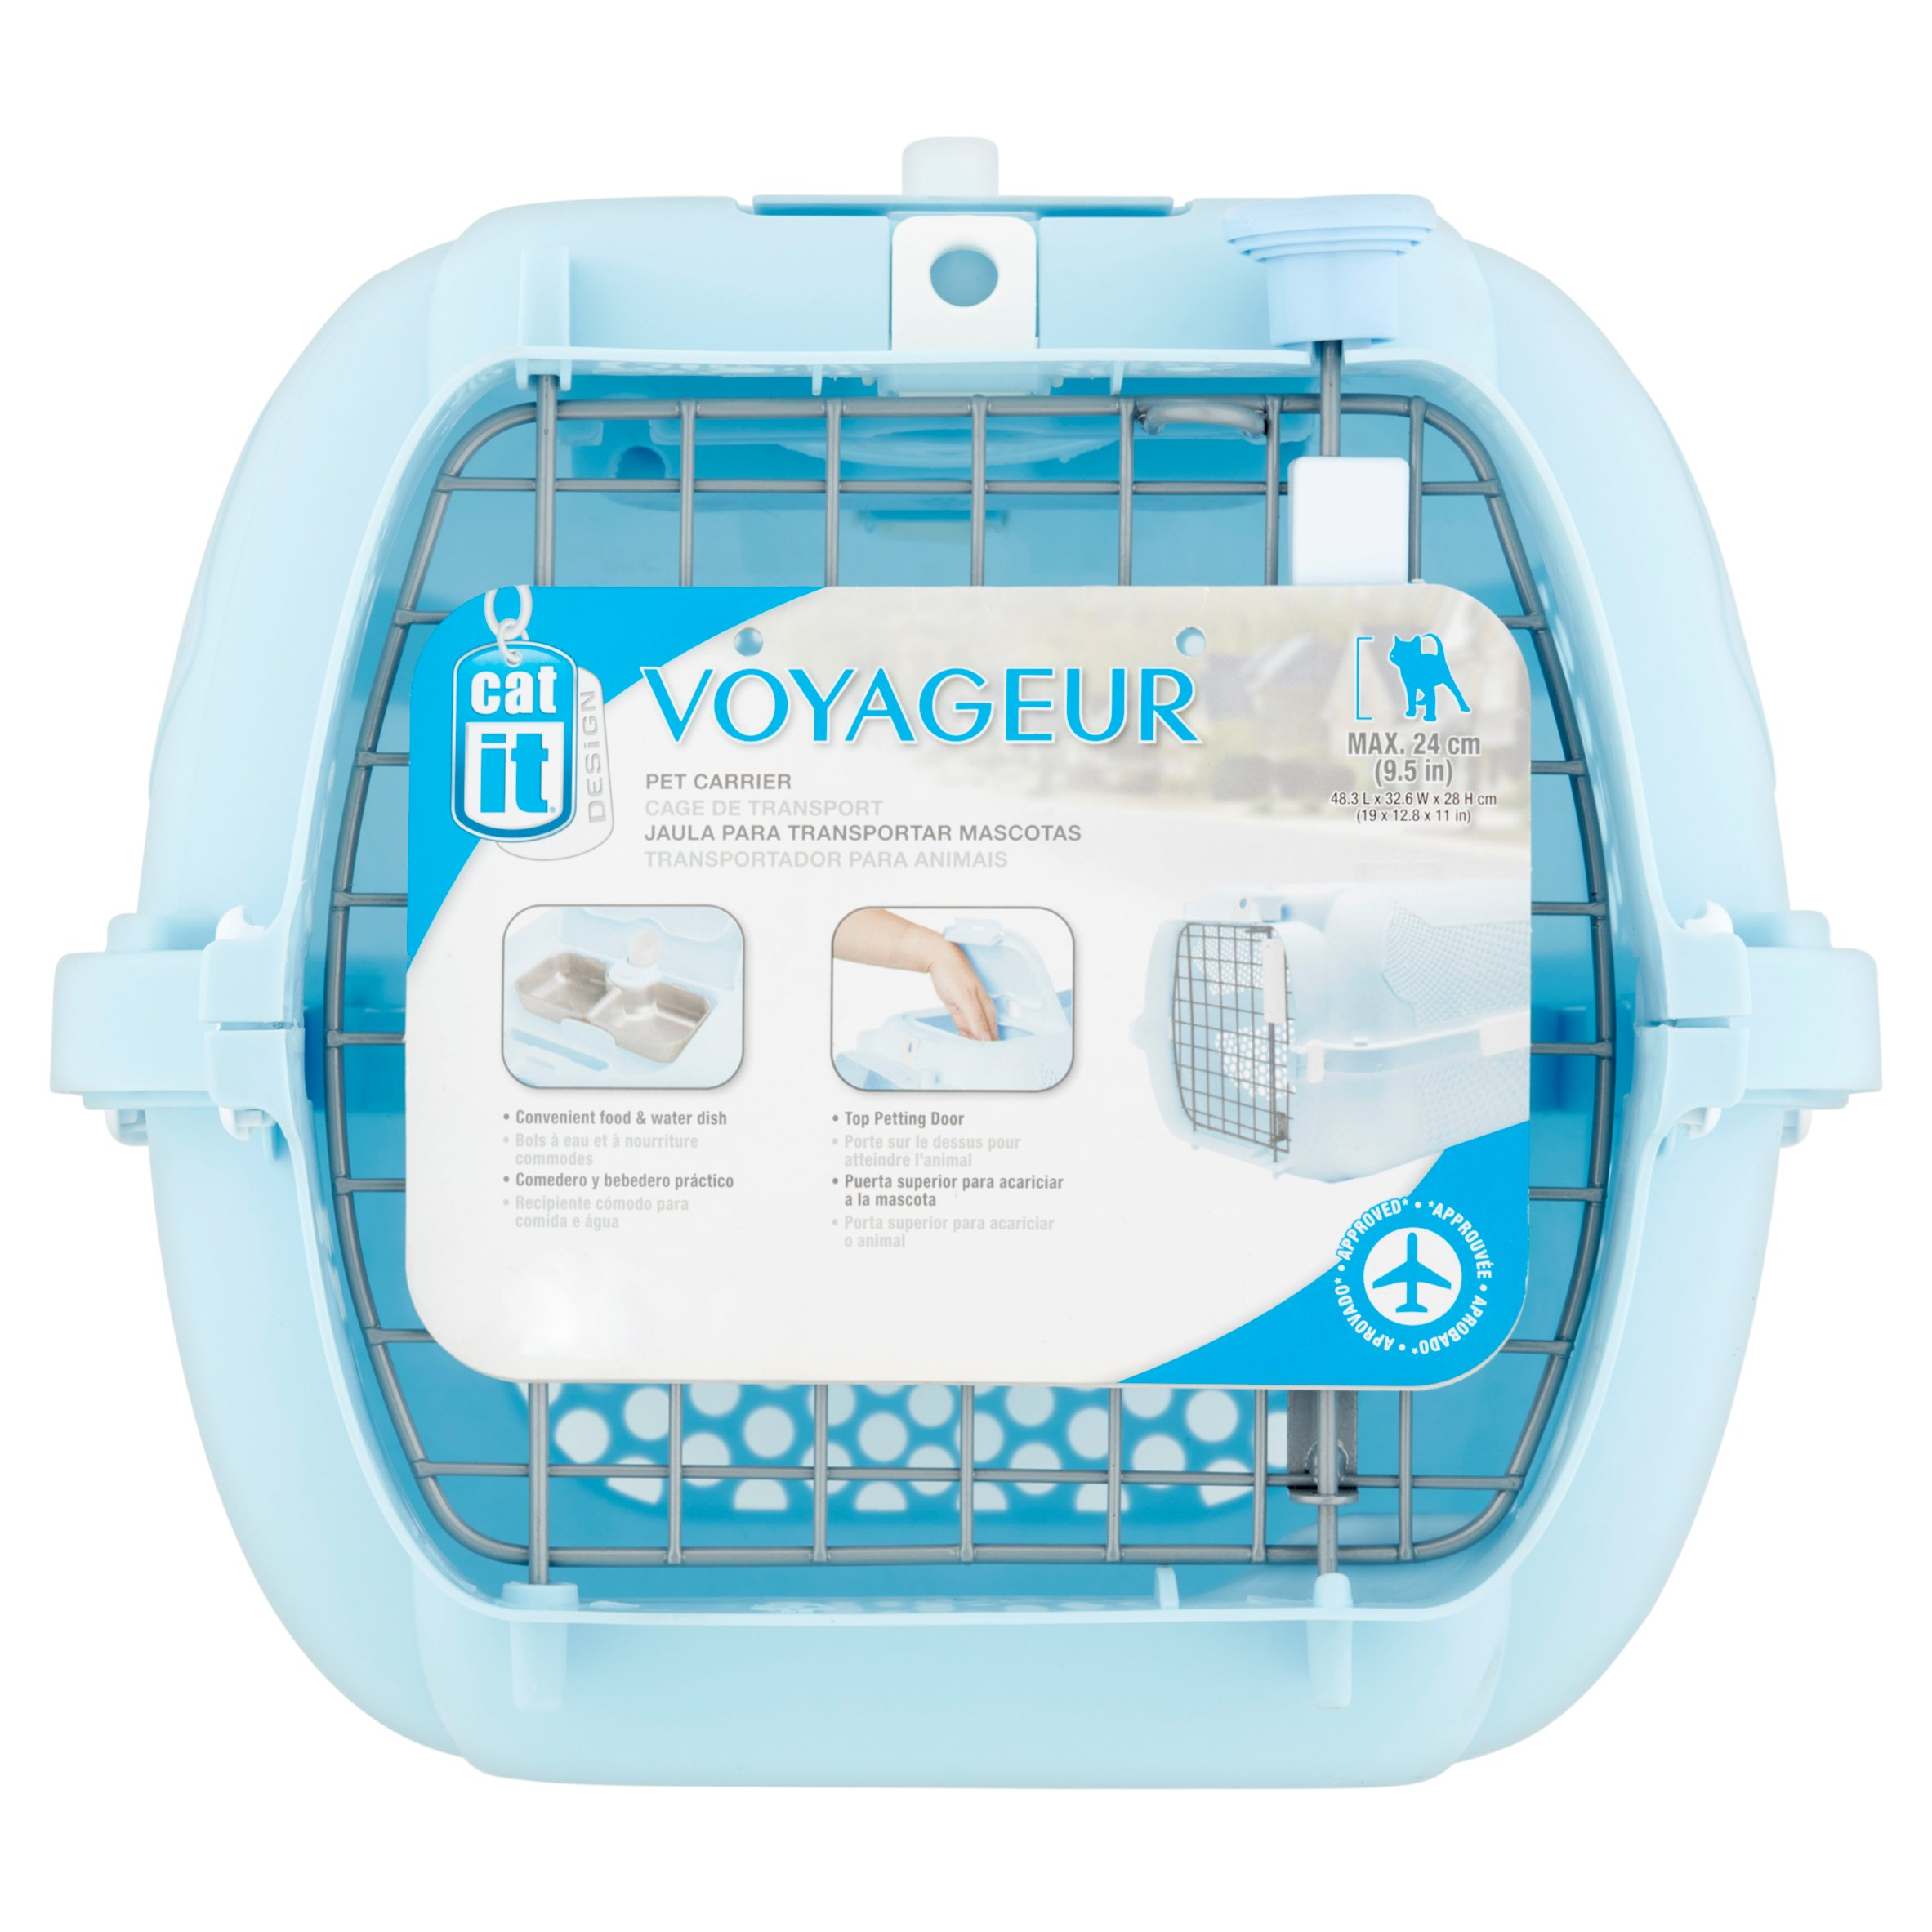 Cat it Voyageur Pet Carrier by Rolkf C. Hagen (U.S.A.) Corp.